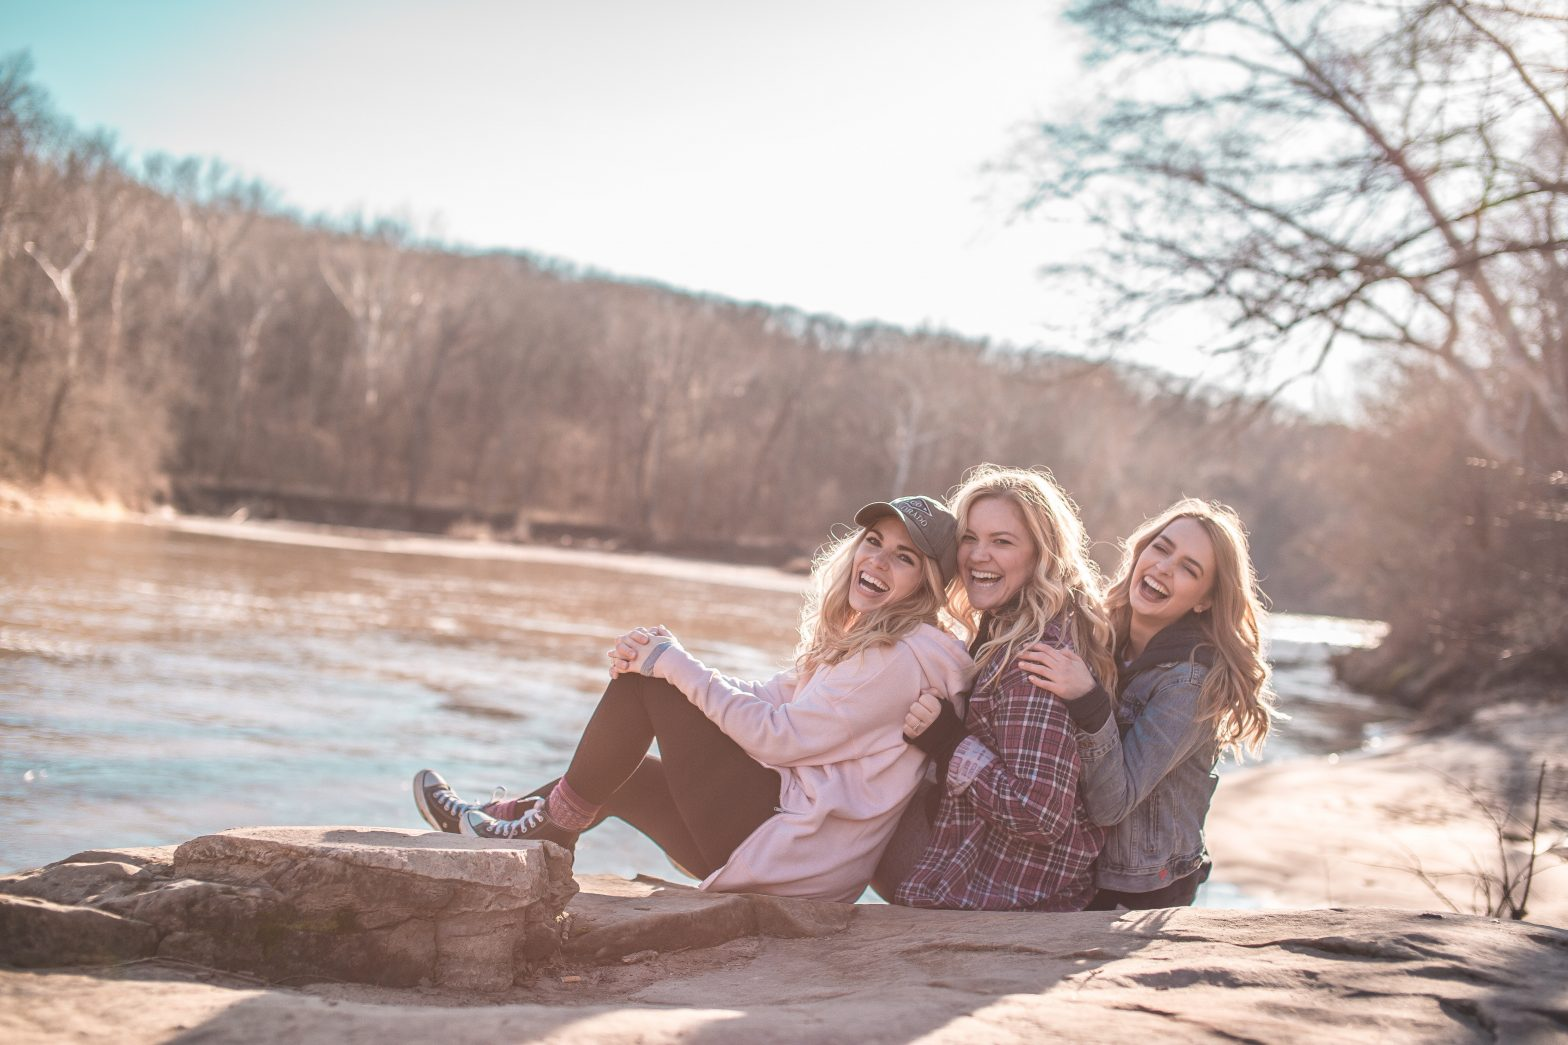 three friends enjoying life by a river in the winter sun